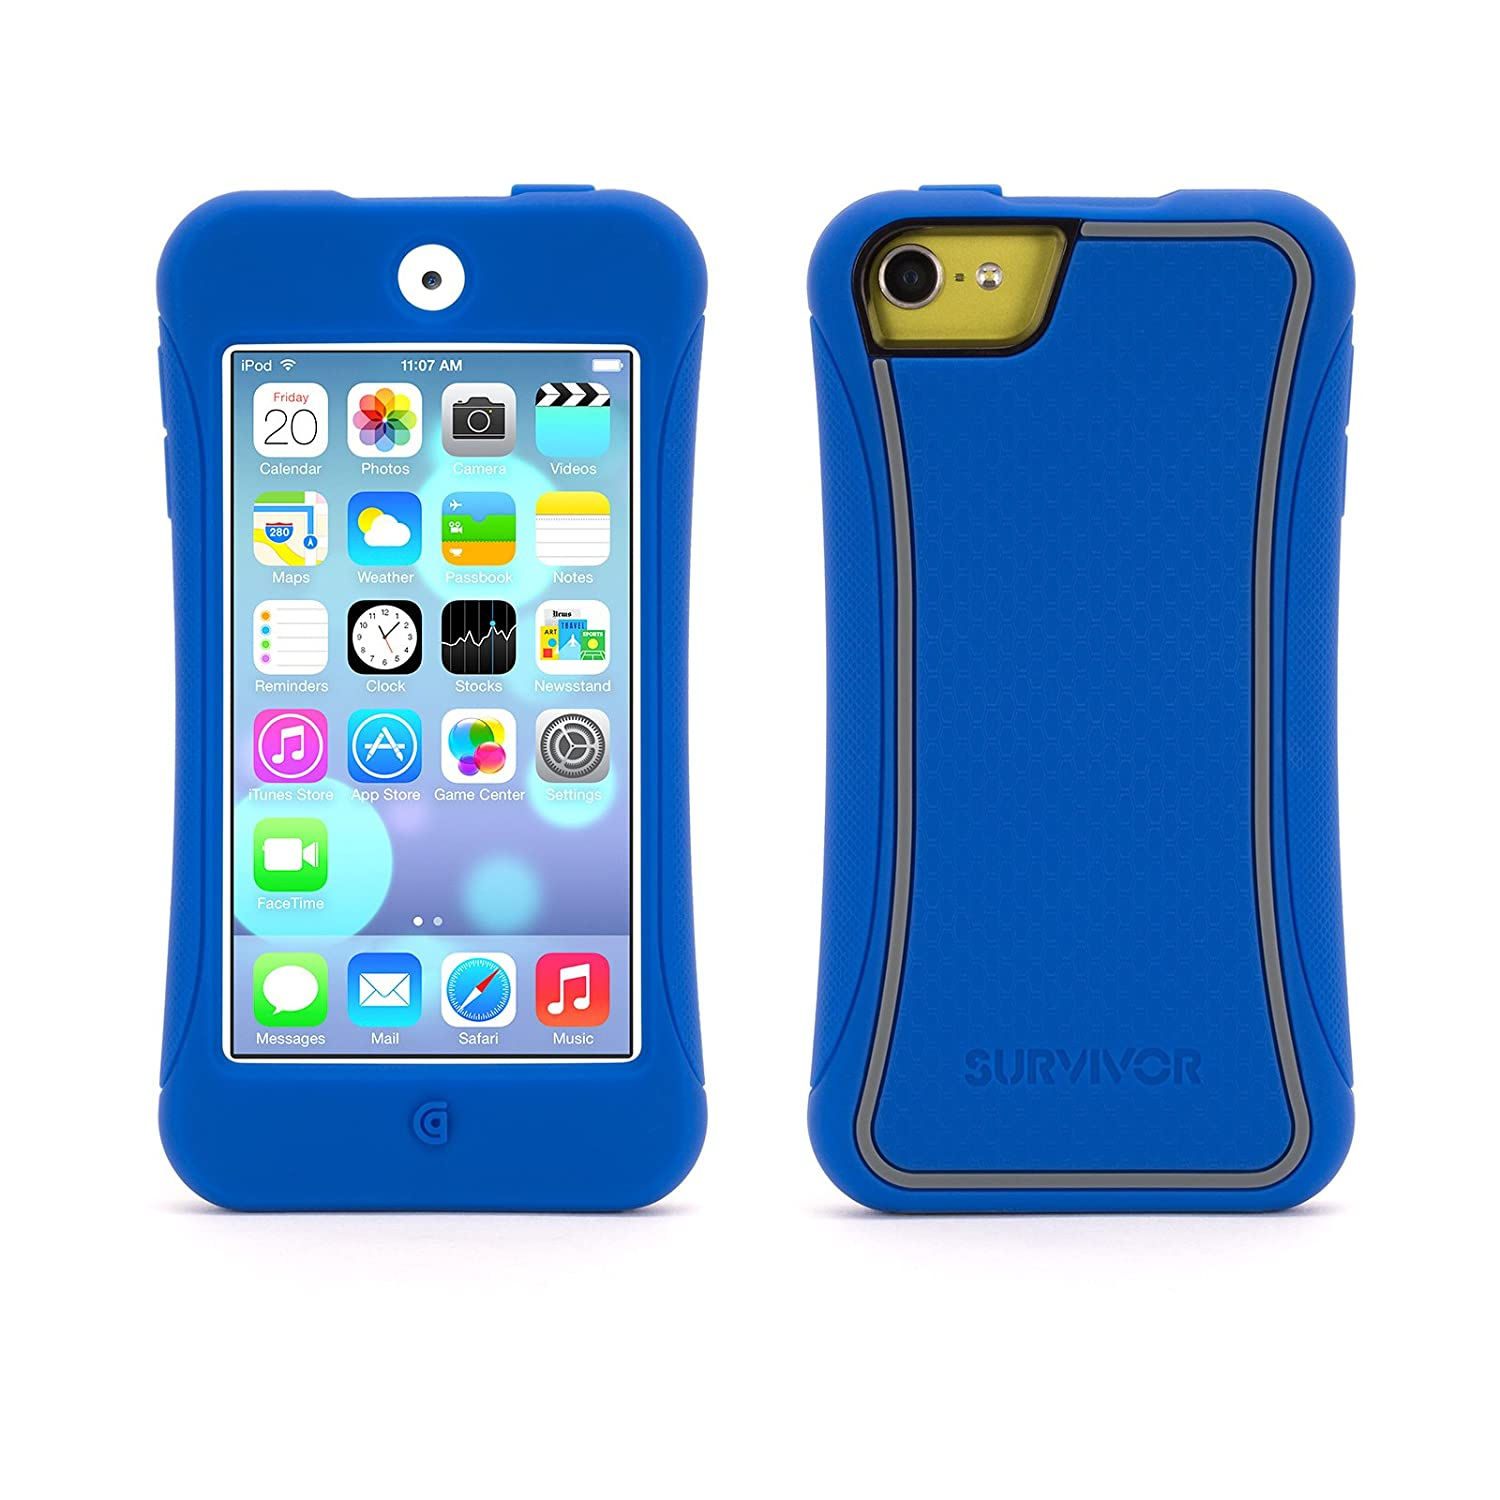 Blue with Grey Trim Survivor Slim for iPod touch (5th gen.)